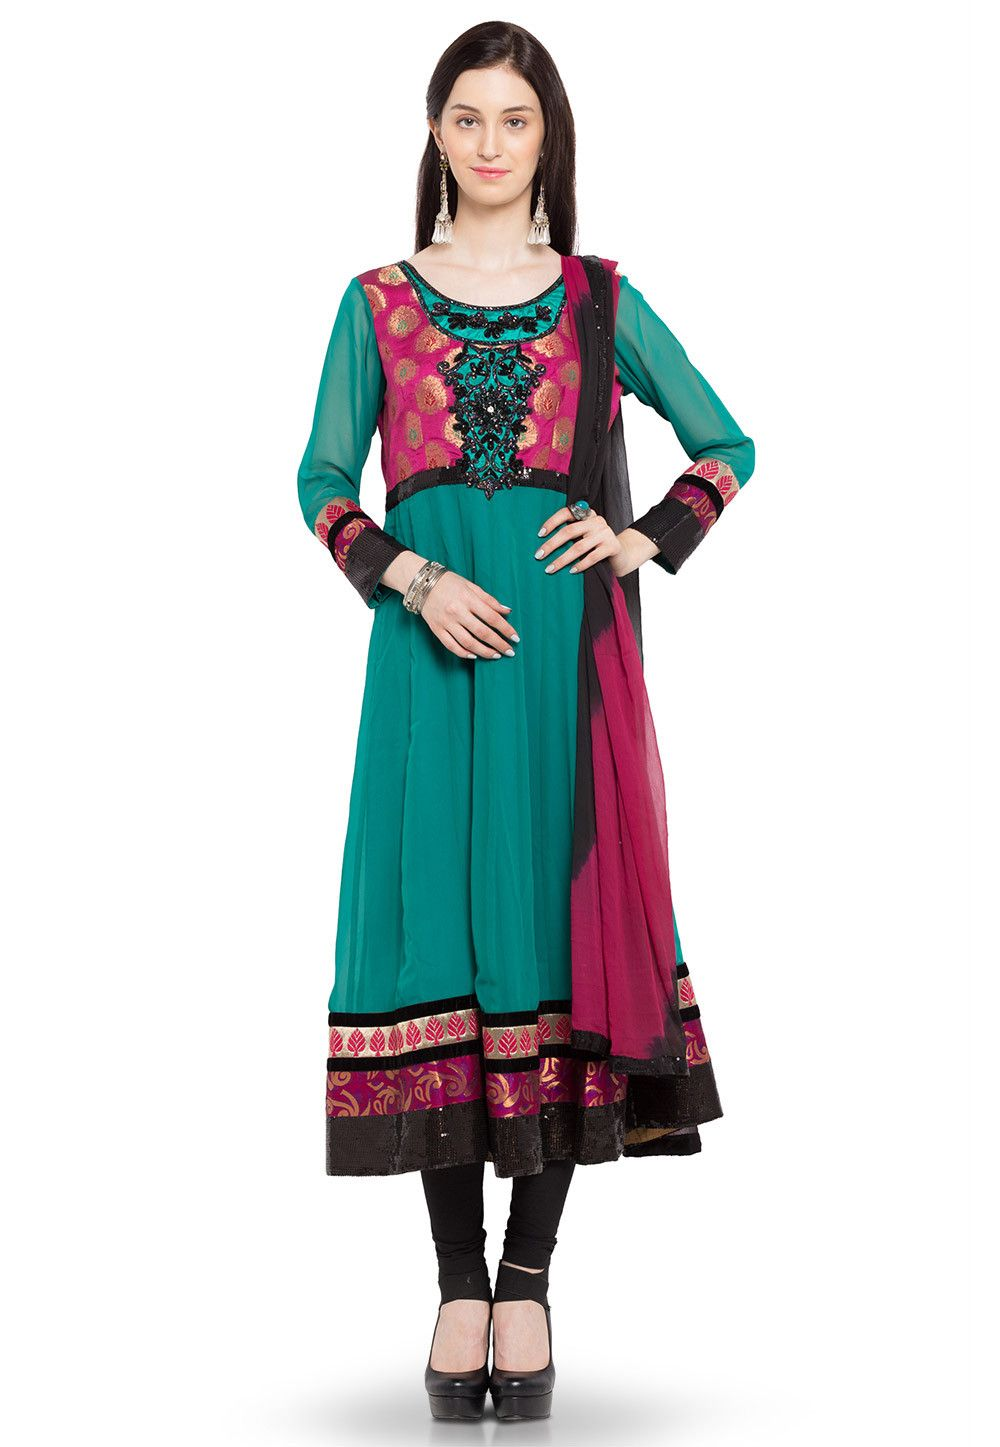 Magnificently detailed with Brocade Yoke and Cutdana, Sequins Embroidered Patch work Hemline (including sleeves hemline) highlighted with Patch border Faux Crepe lining Available with Faux Crepe Churidar in Black and Faux Chiffon Dupatta in Shaded Black and Fuchsia Readymade Suit